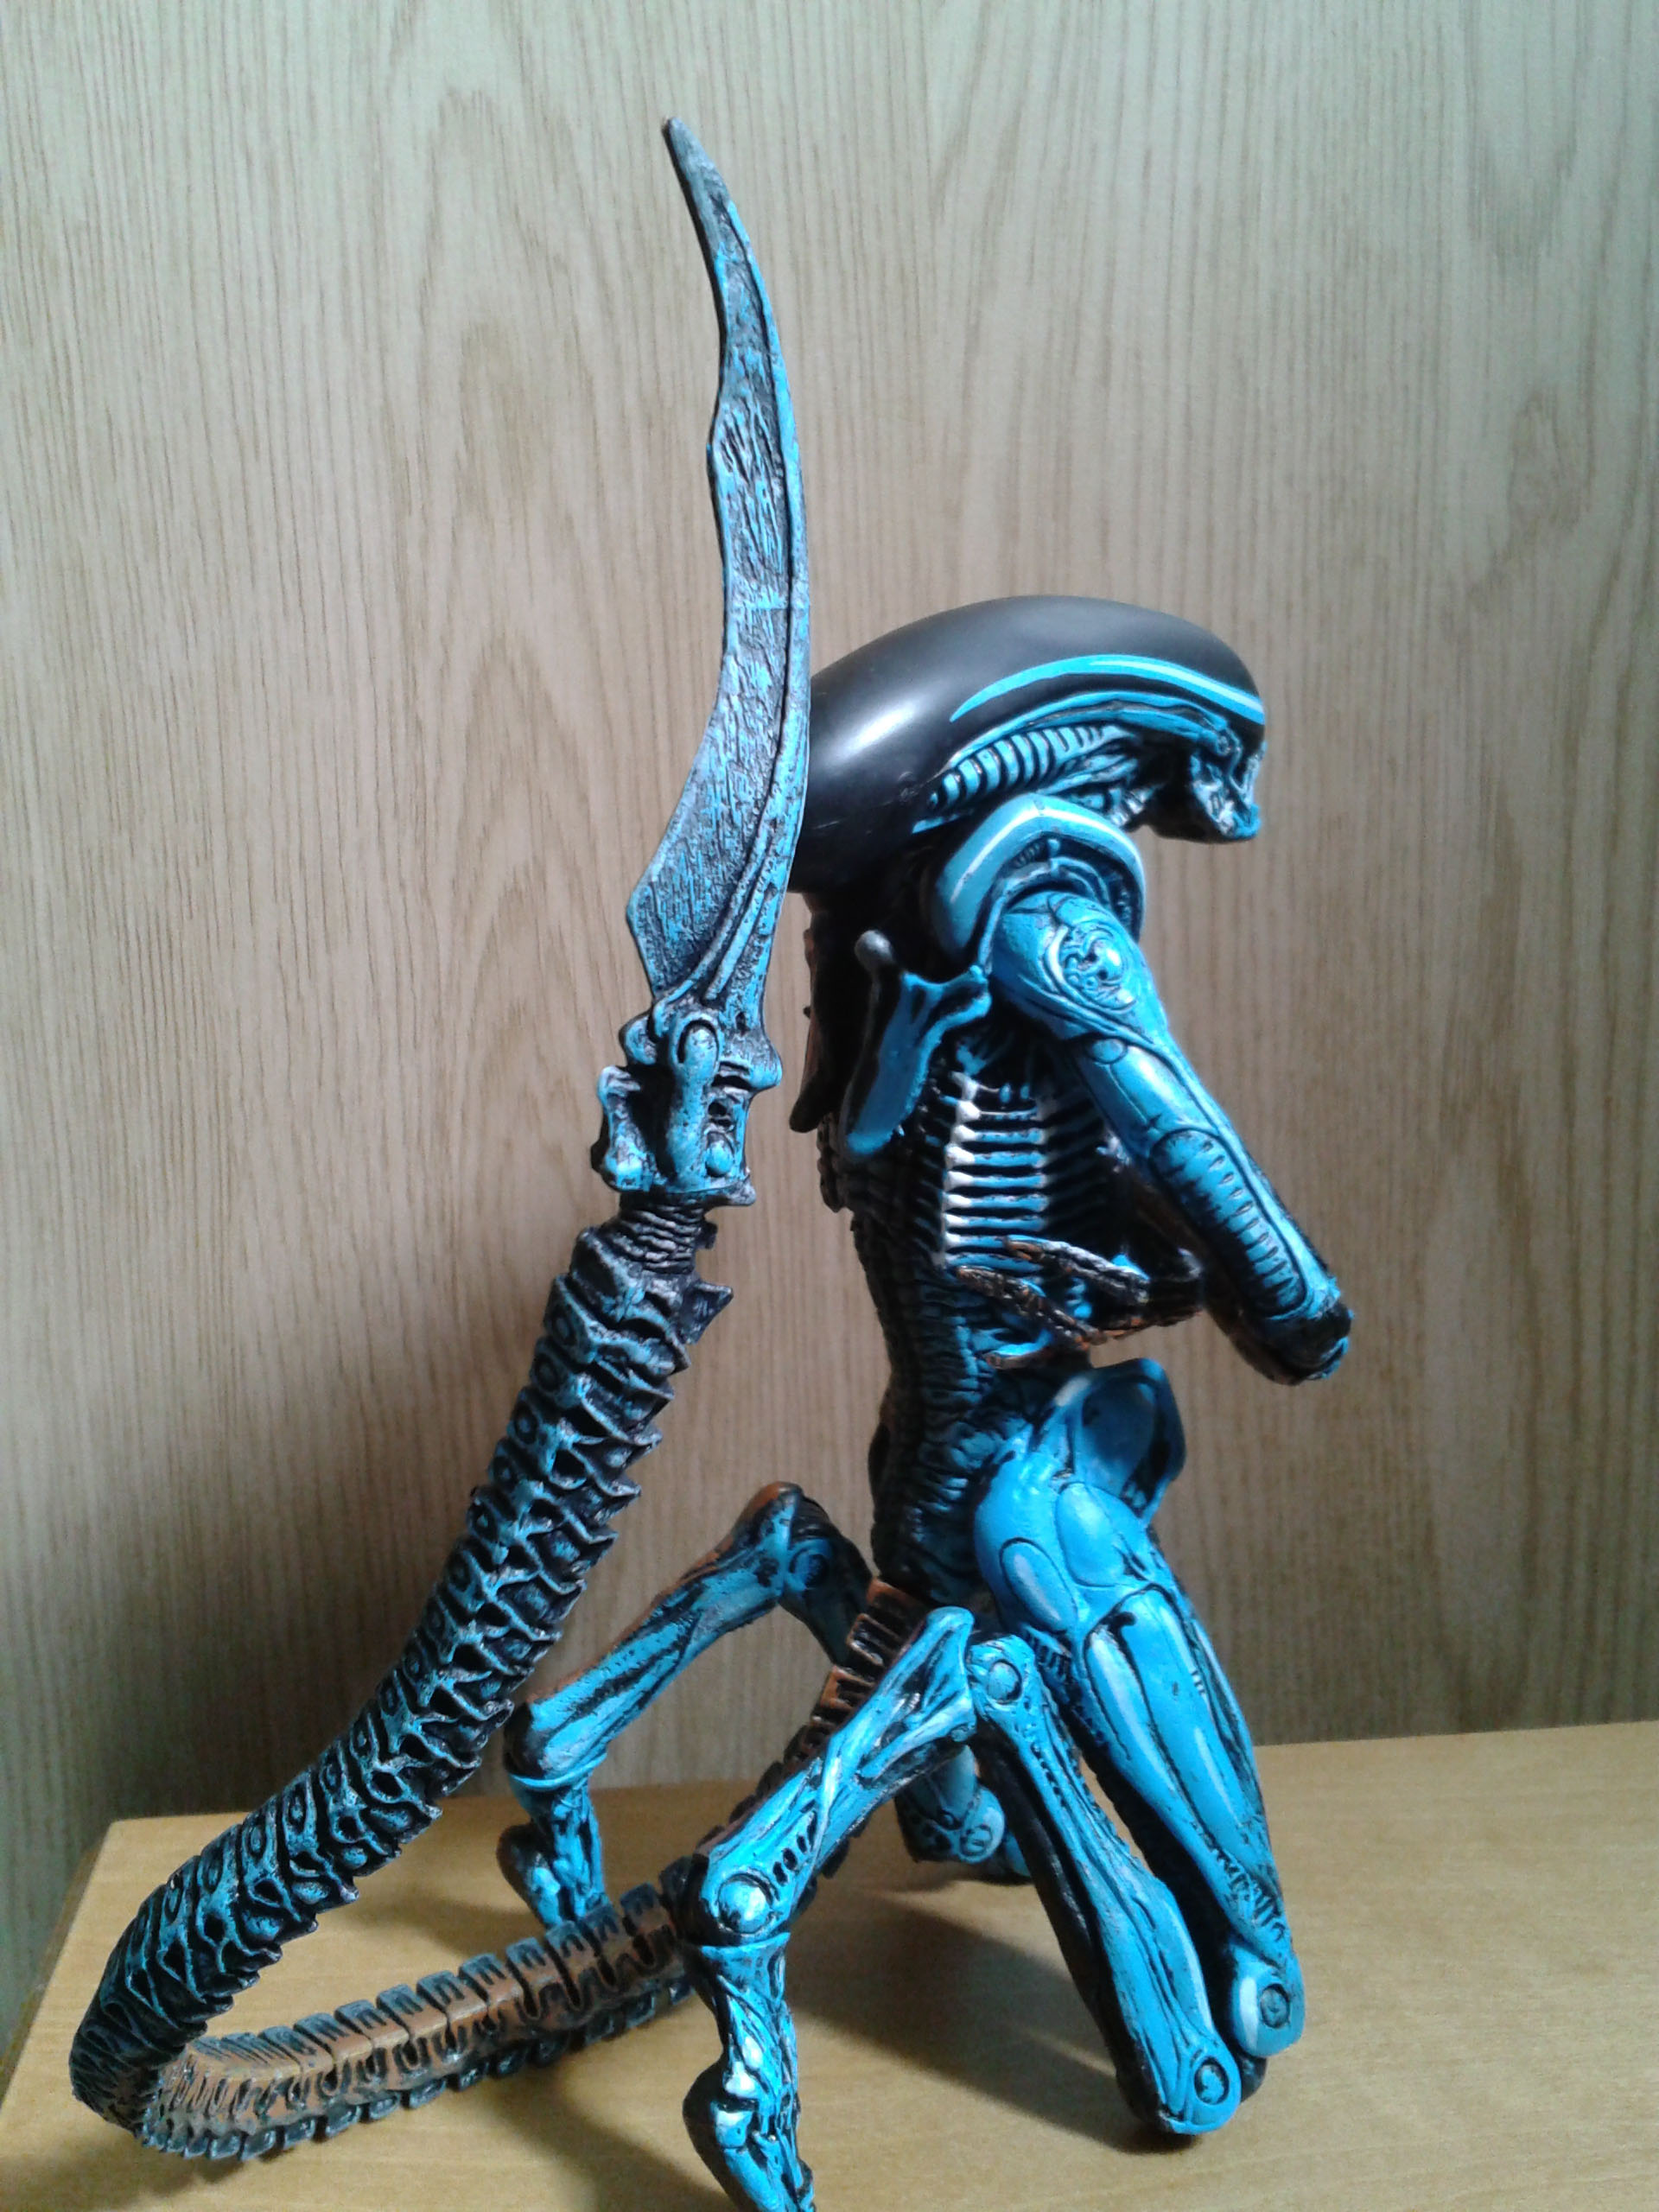 NECA Alien 3 Figure. Video Game Paint Detail